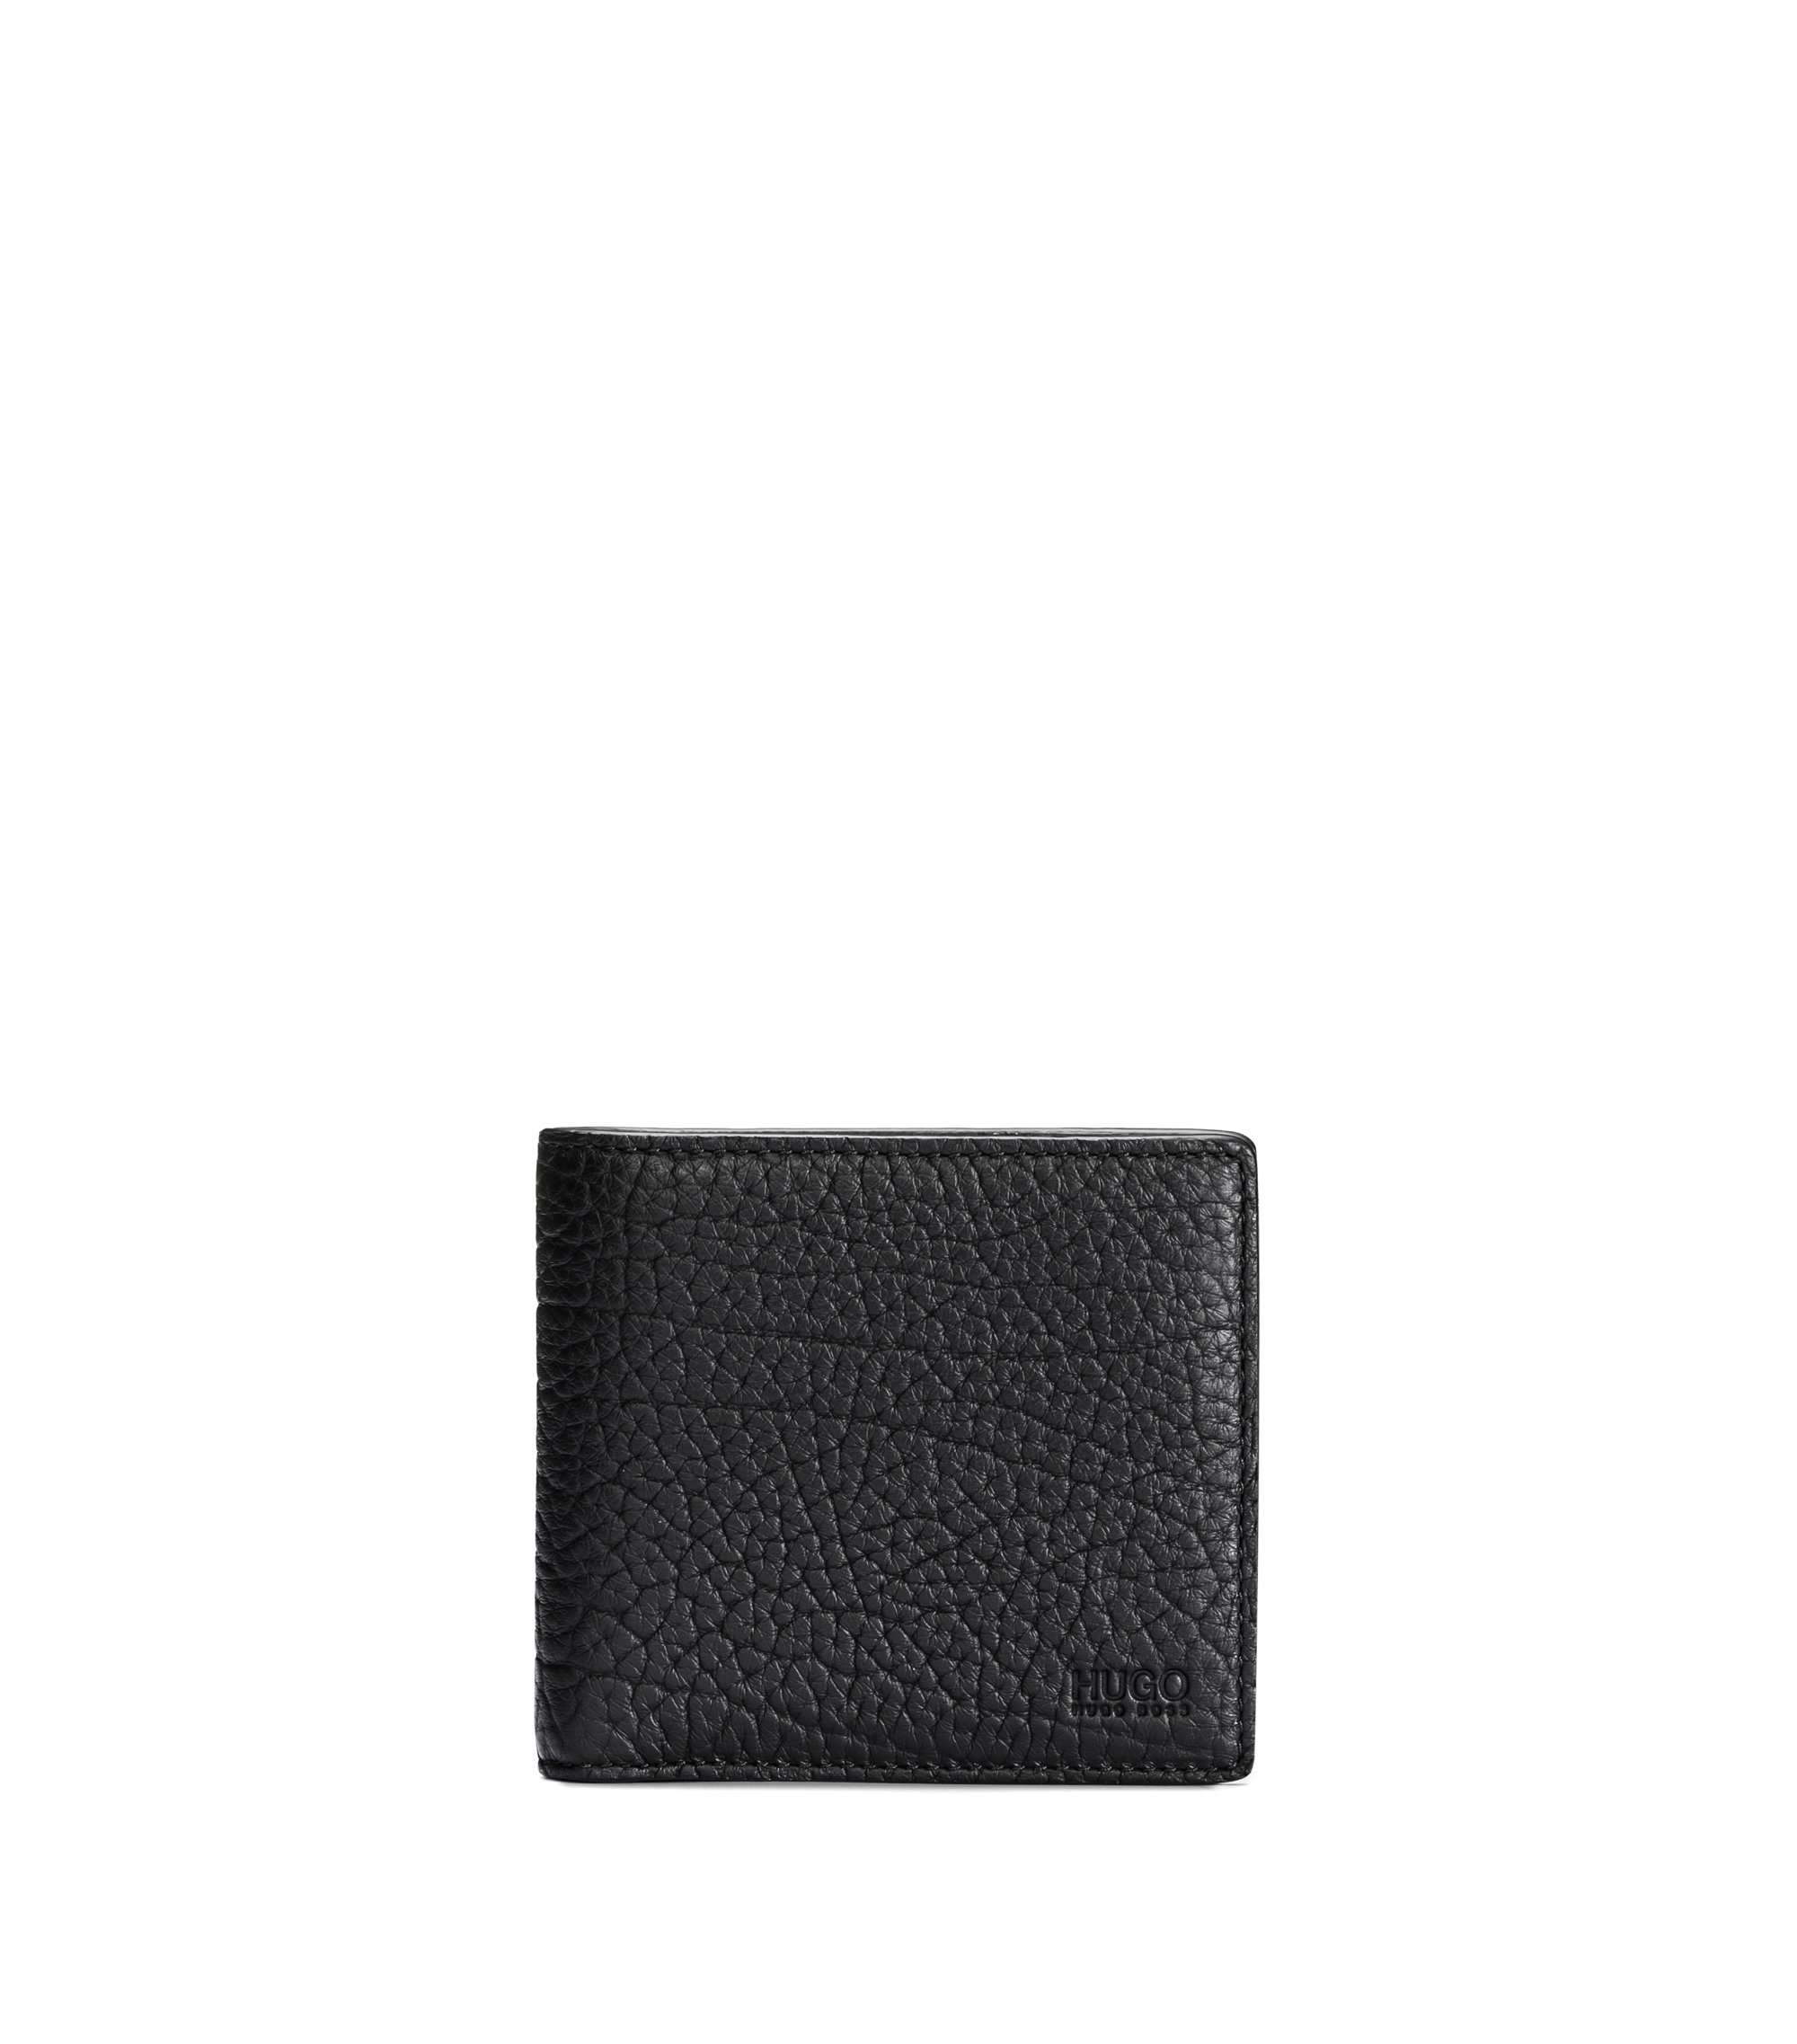 Grained leather billfold wallet with coin pocket, Black